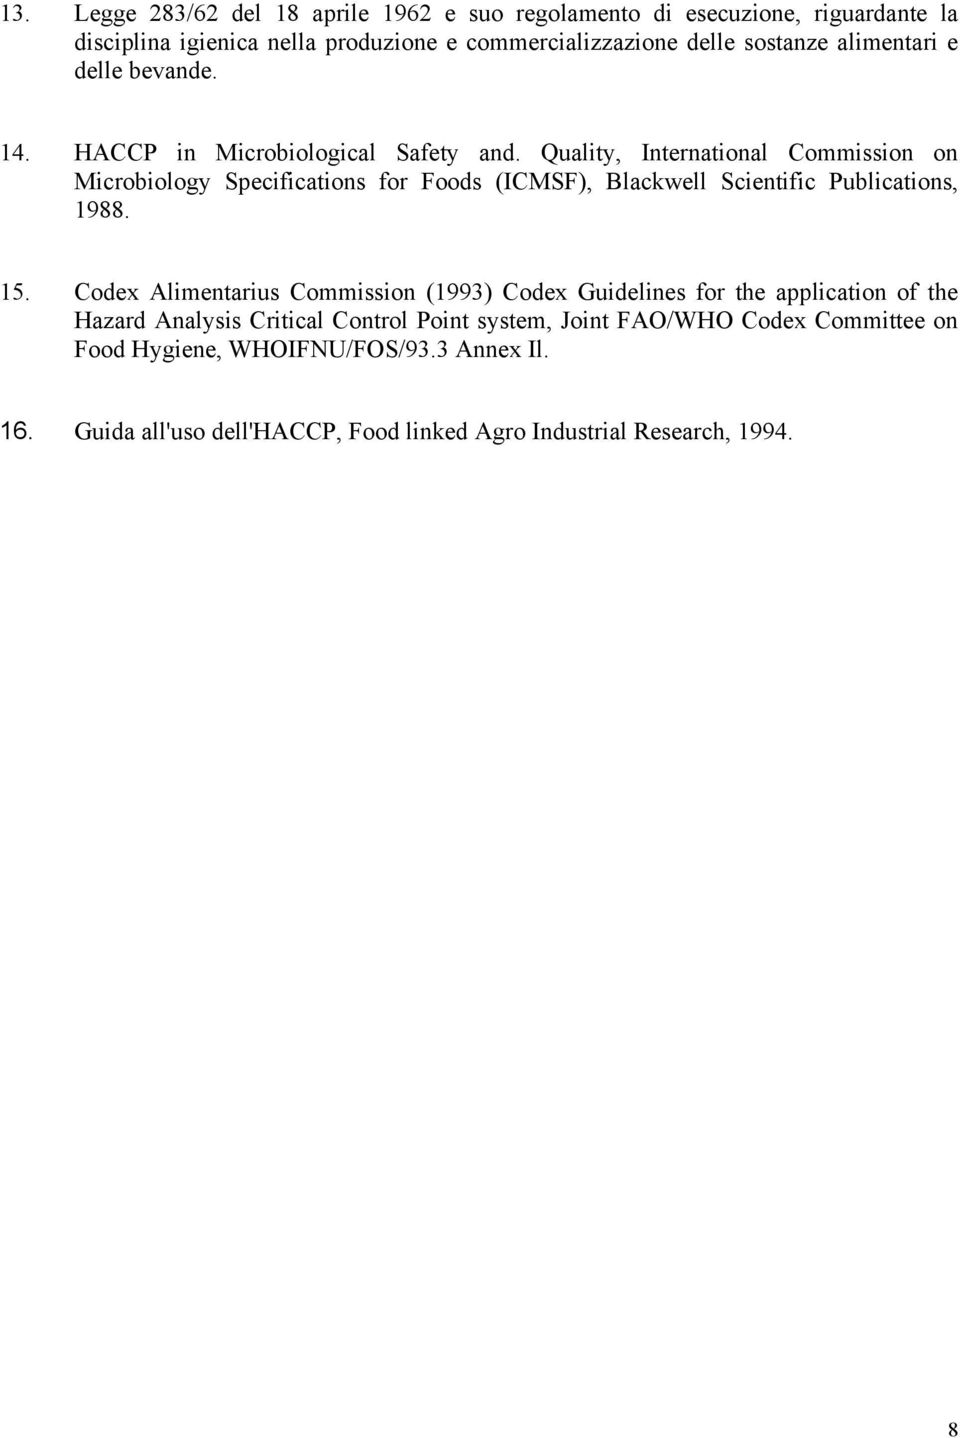 Quality, International Commission on Microbiology Specifications for Foods (ICMSF), Blackwell Scientific Publications, 1988. 15.